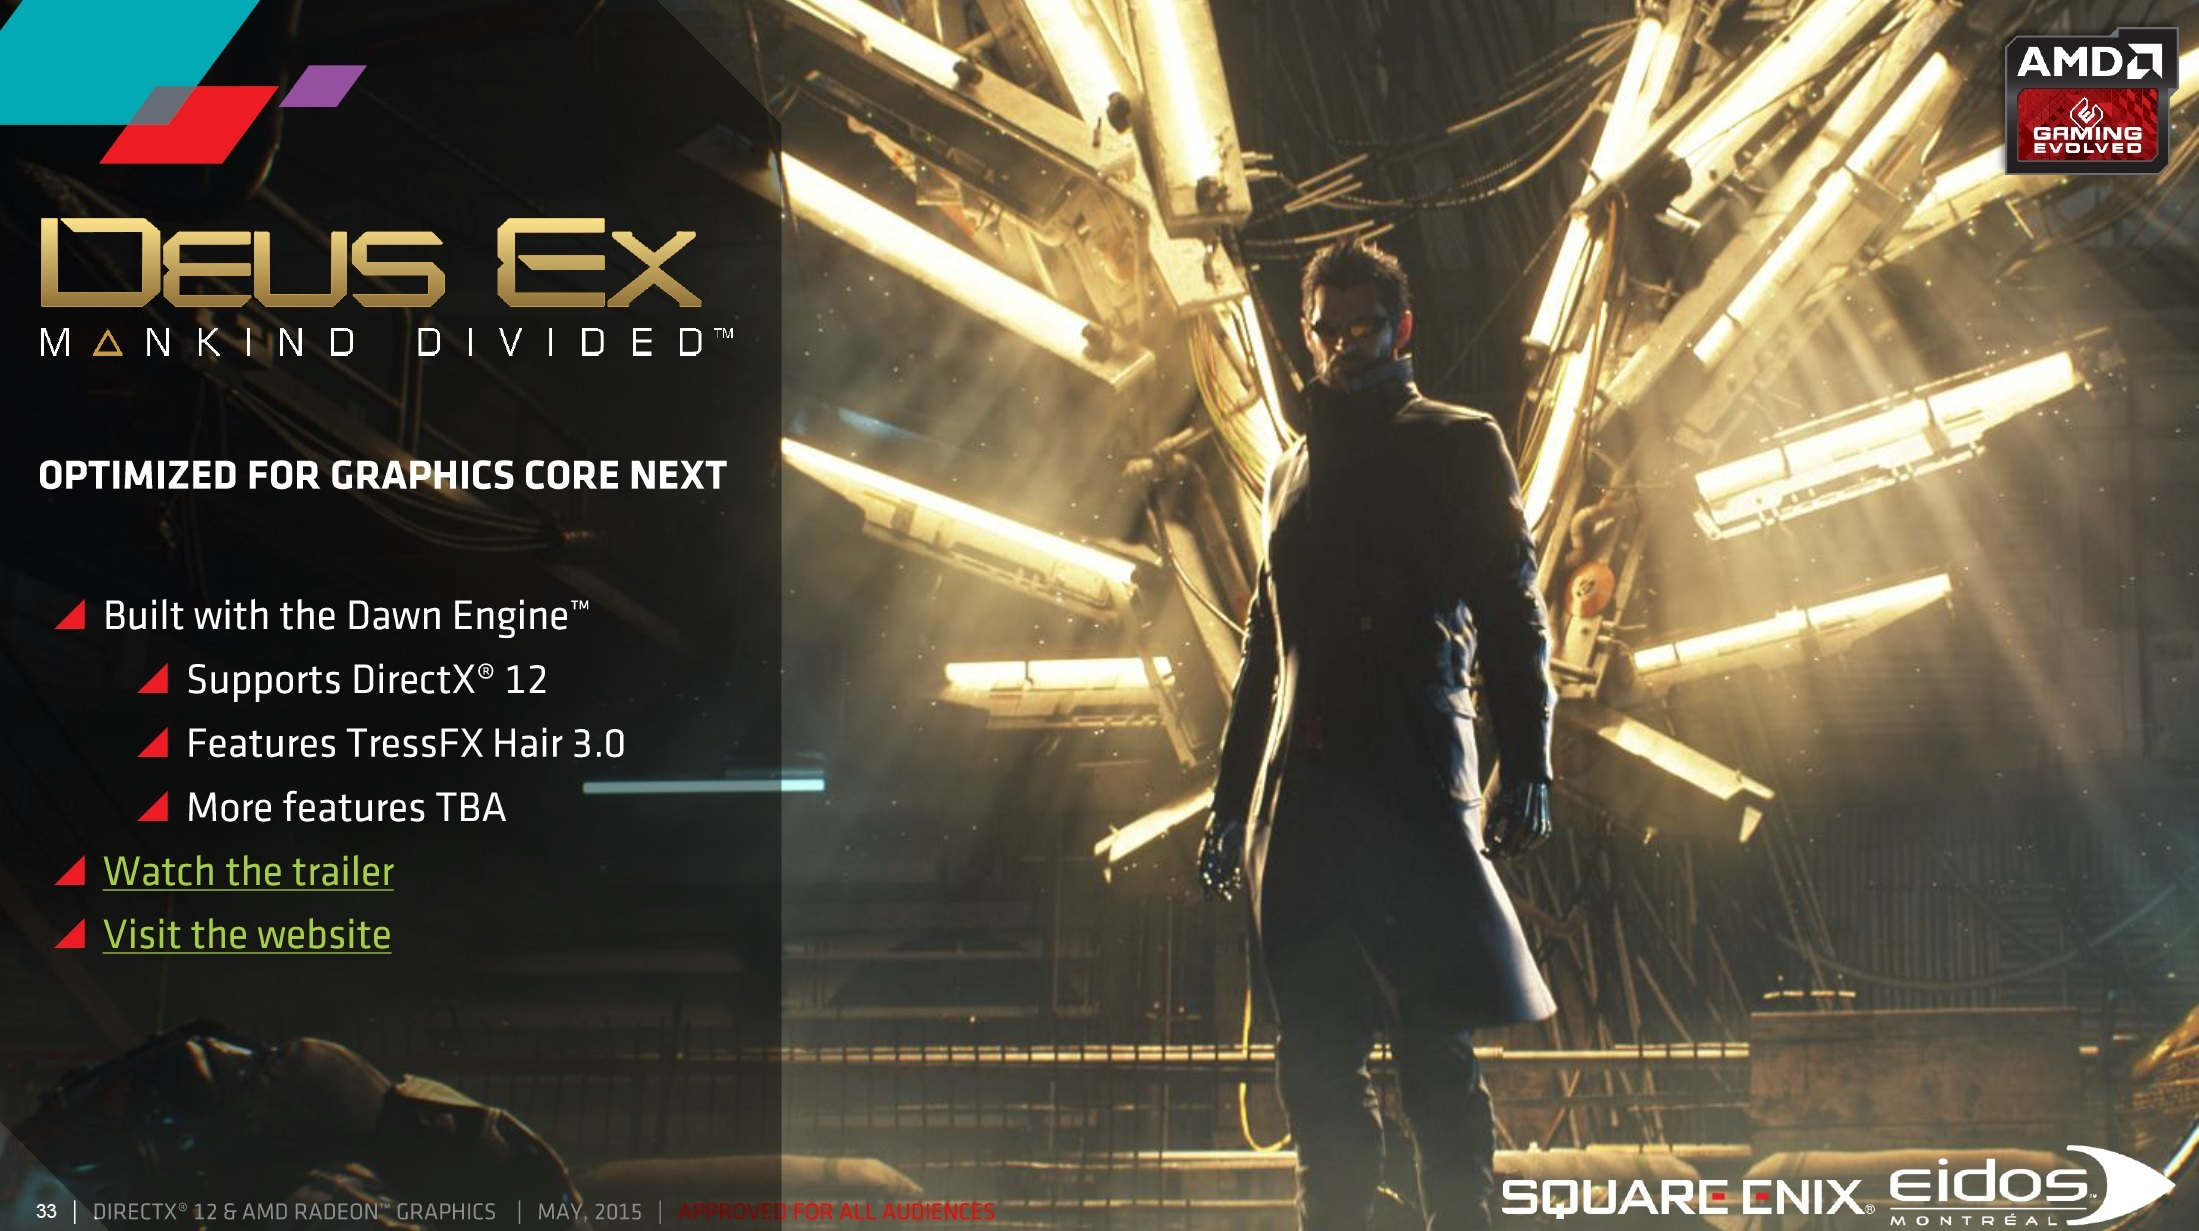 Deus Ex: Mankind Divided Confirmed to support DirectX 12 and TressFX 3.0